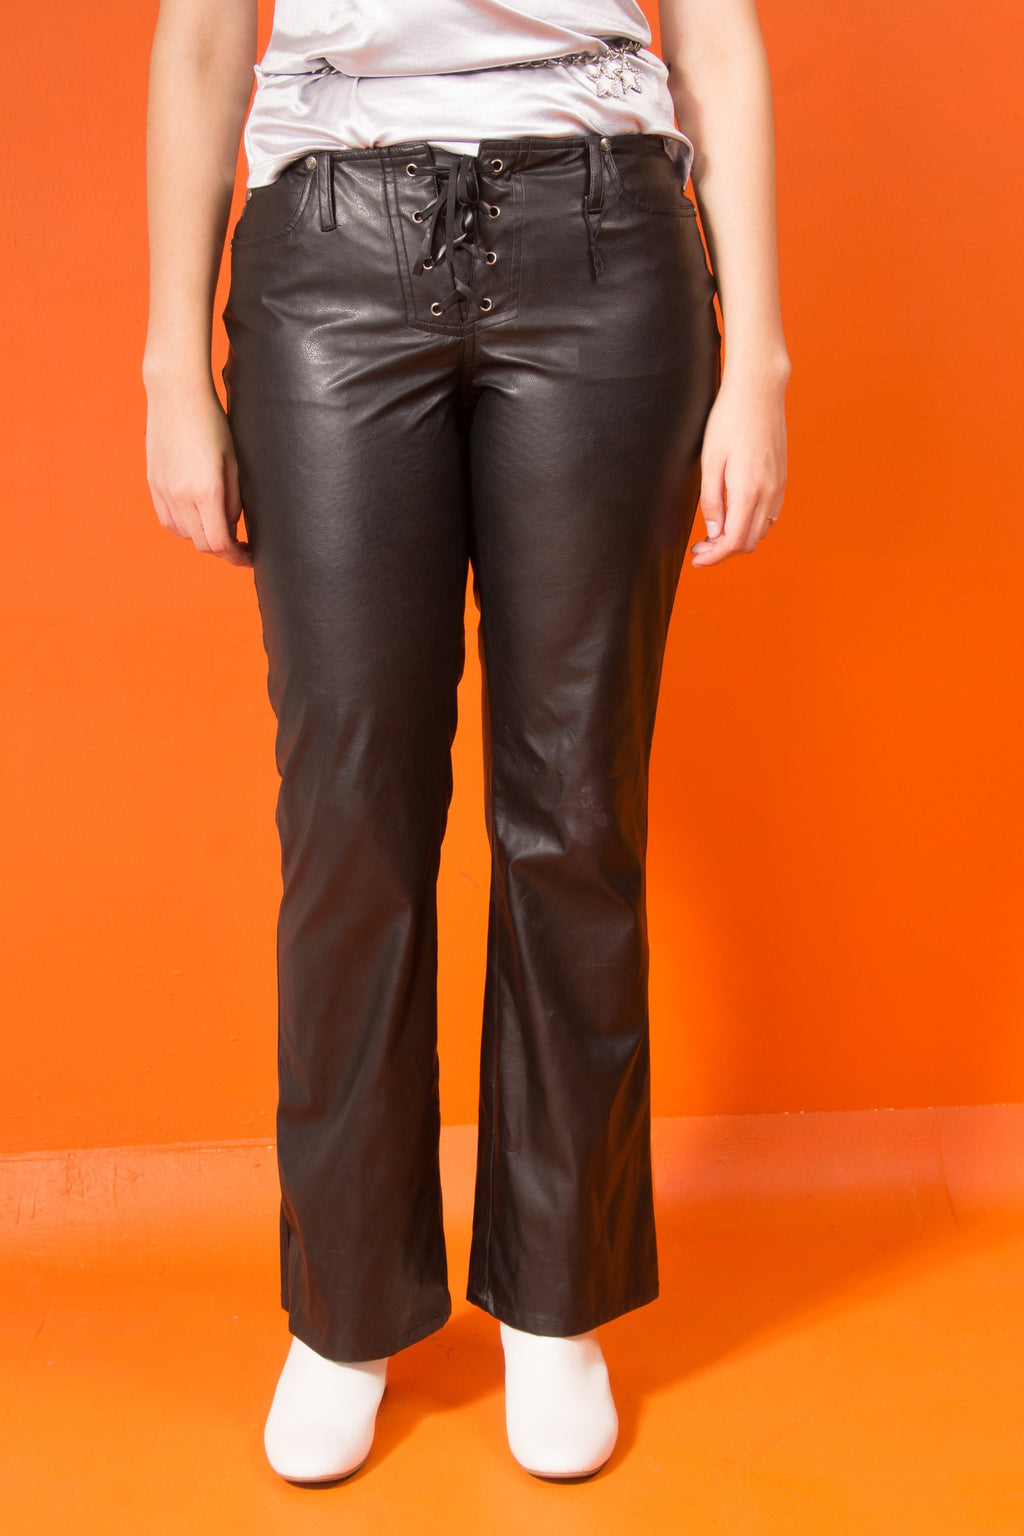 00's leather pants